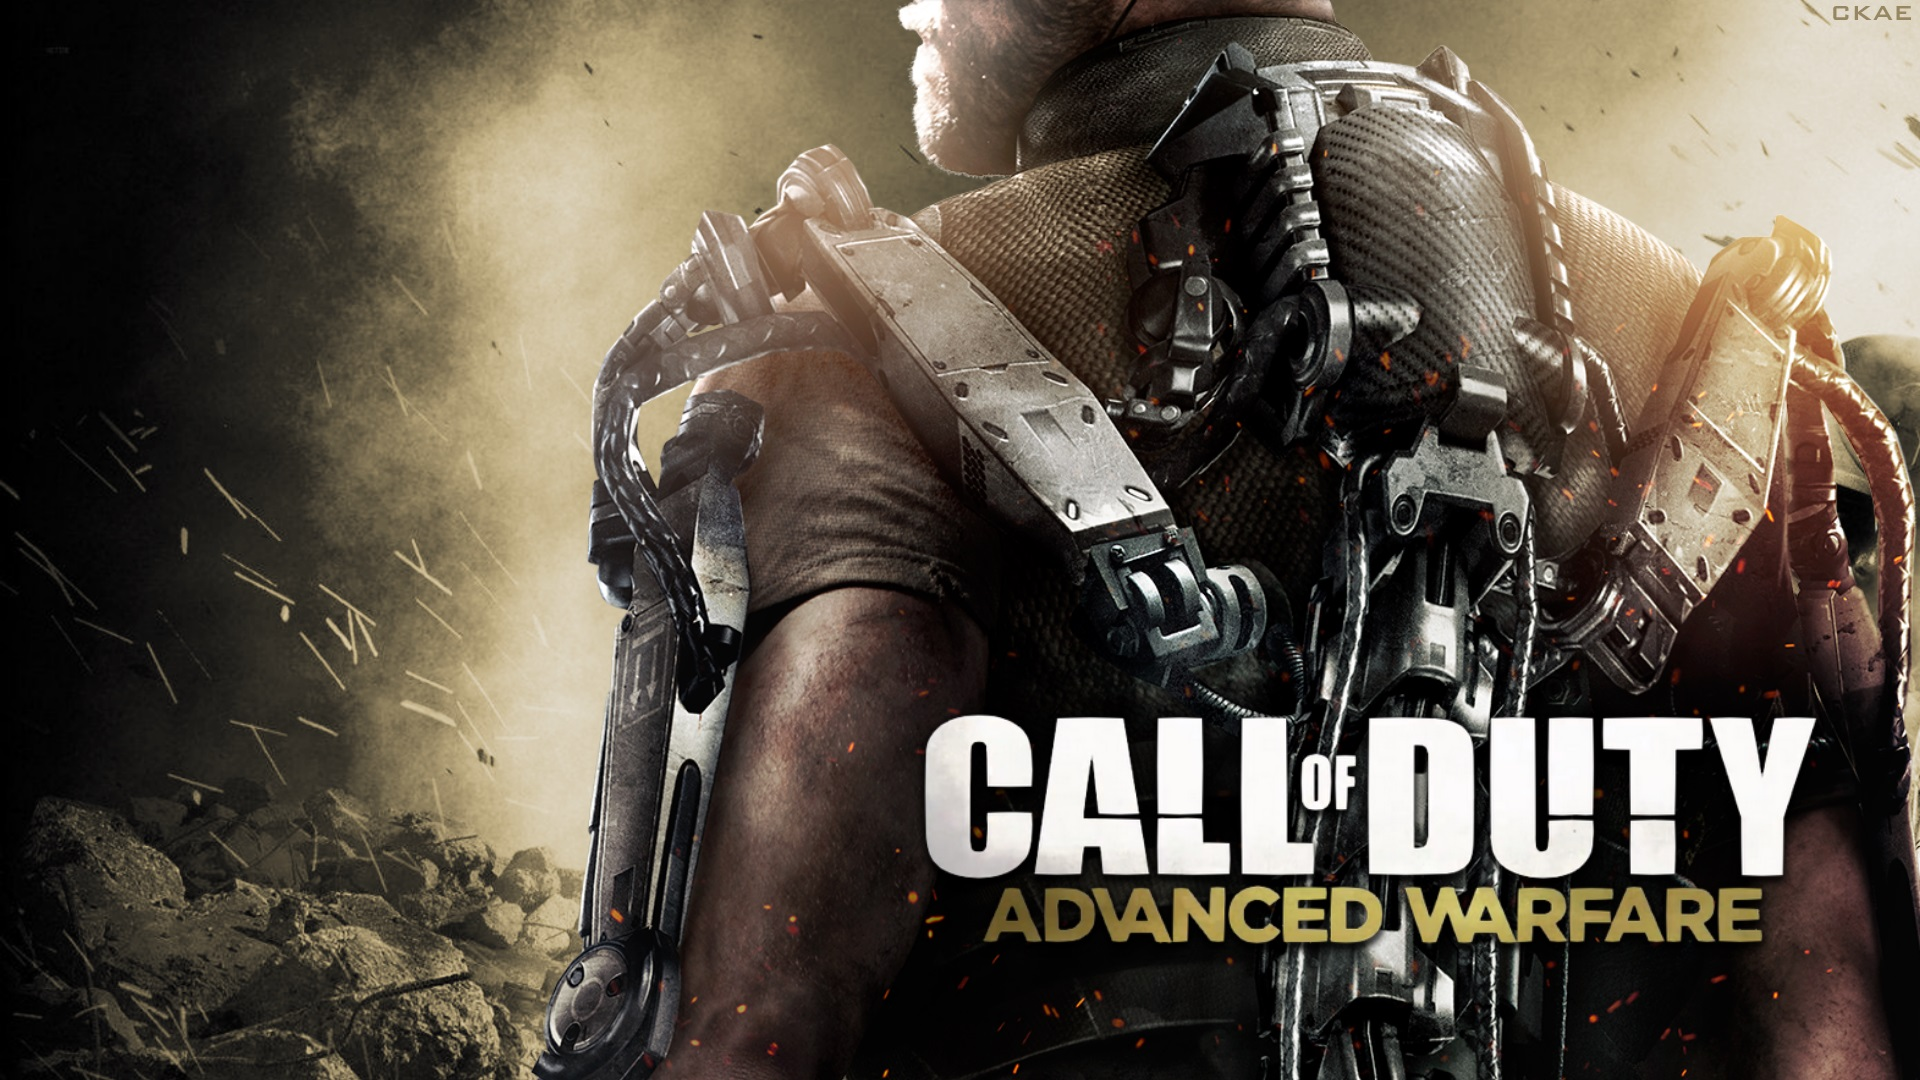 Free Download Call Of Duty Advanced Warfare Exo Zombies Is Coming As Dlc In 1920x1080 For Your Desktop Mobile Tablet Explore 48 Exo Zombies Wallpapers Exo Wallpaper Hd